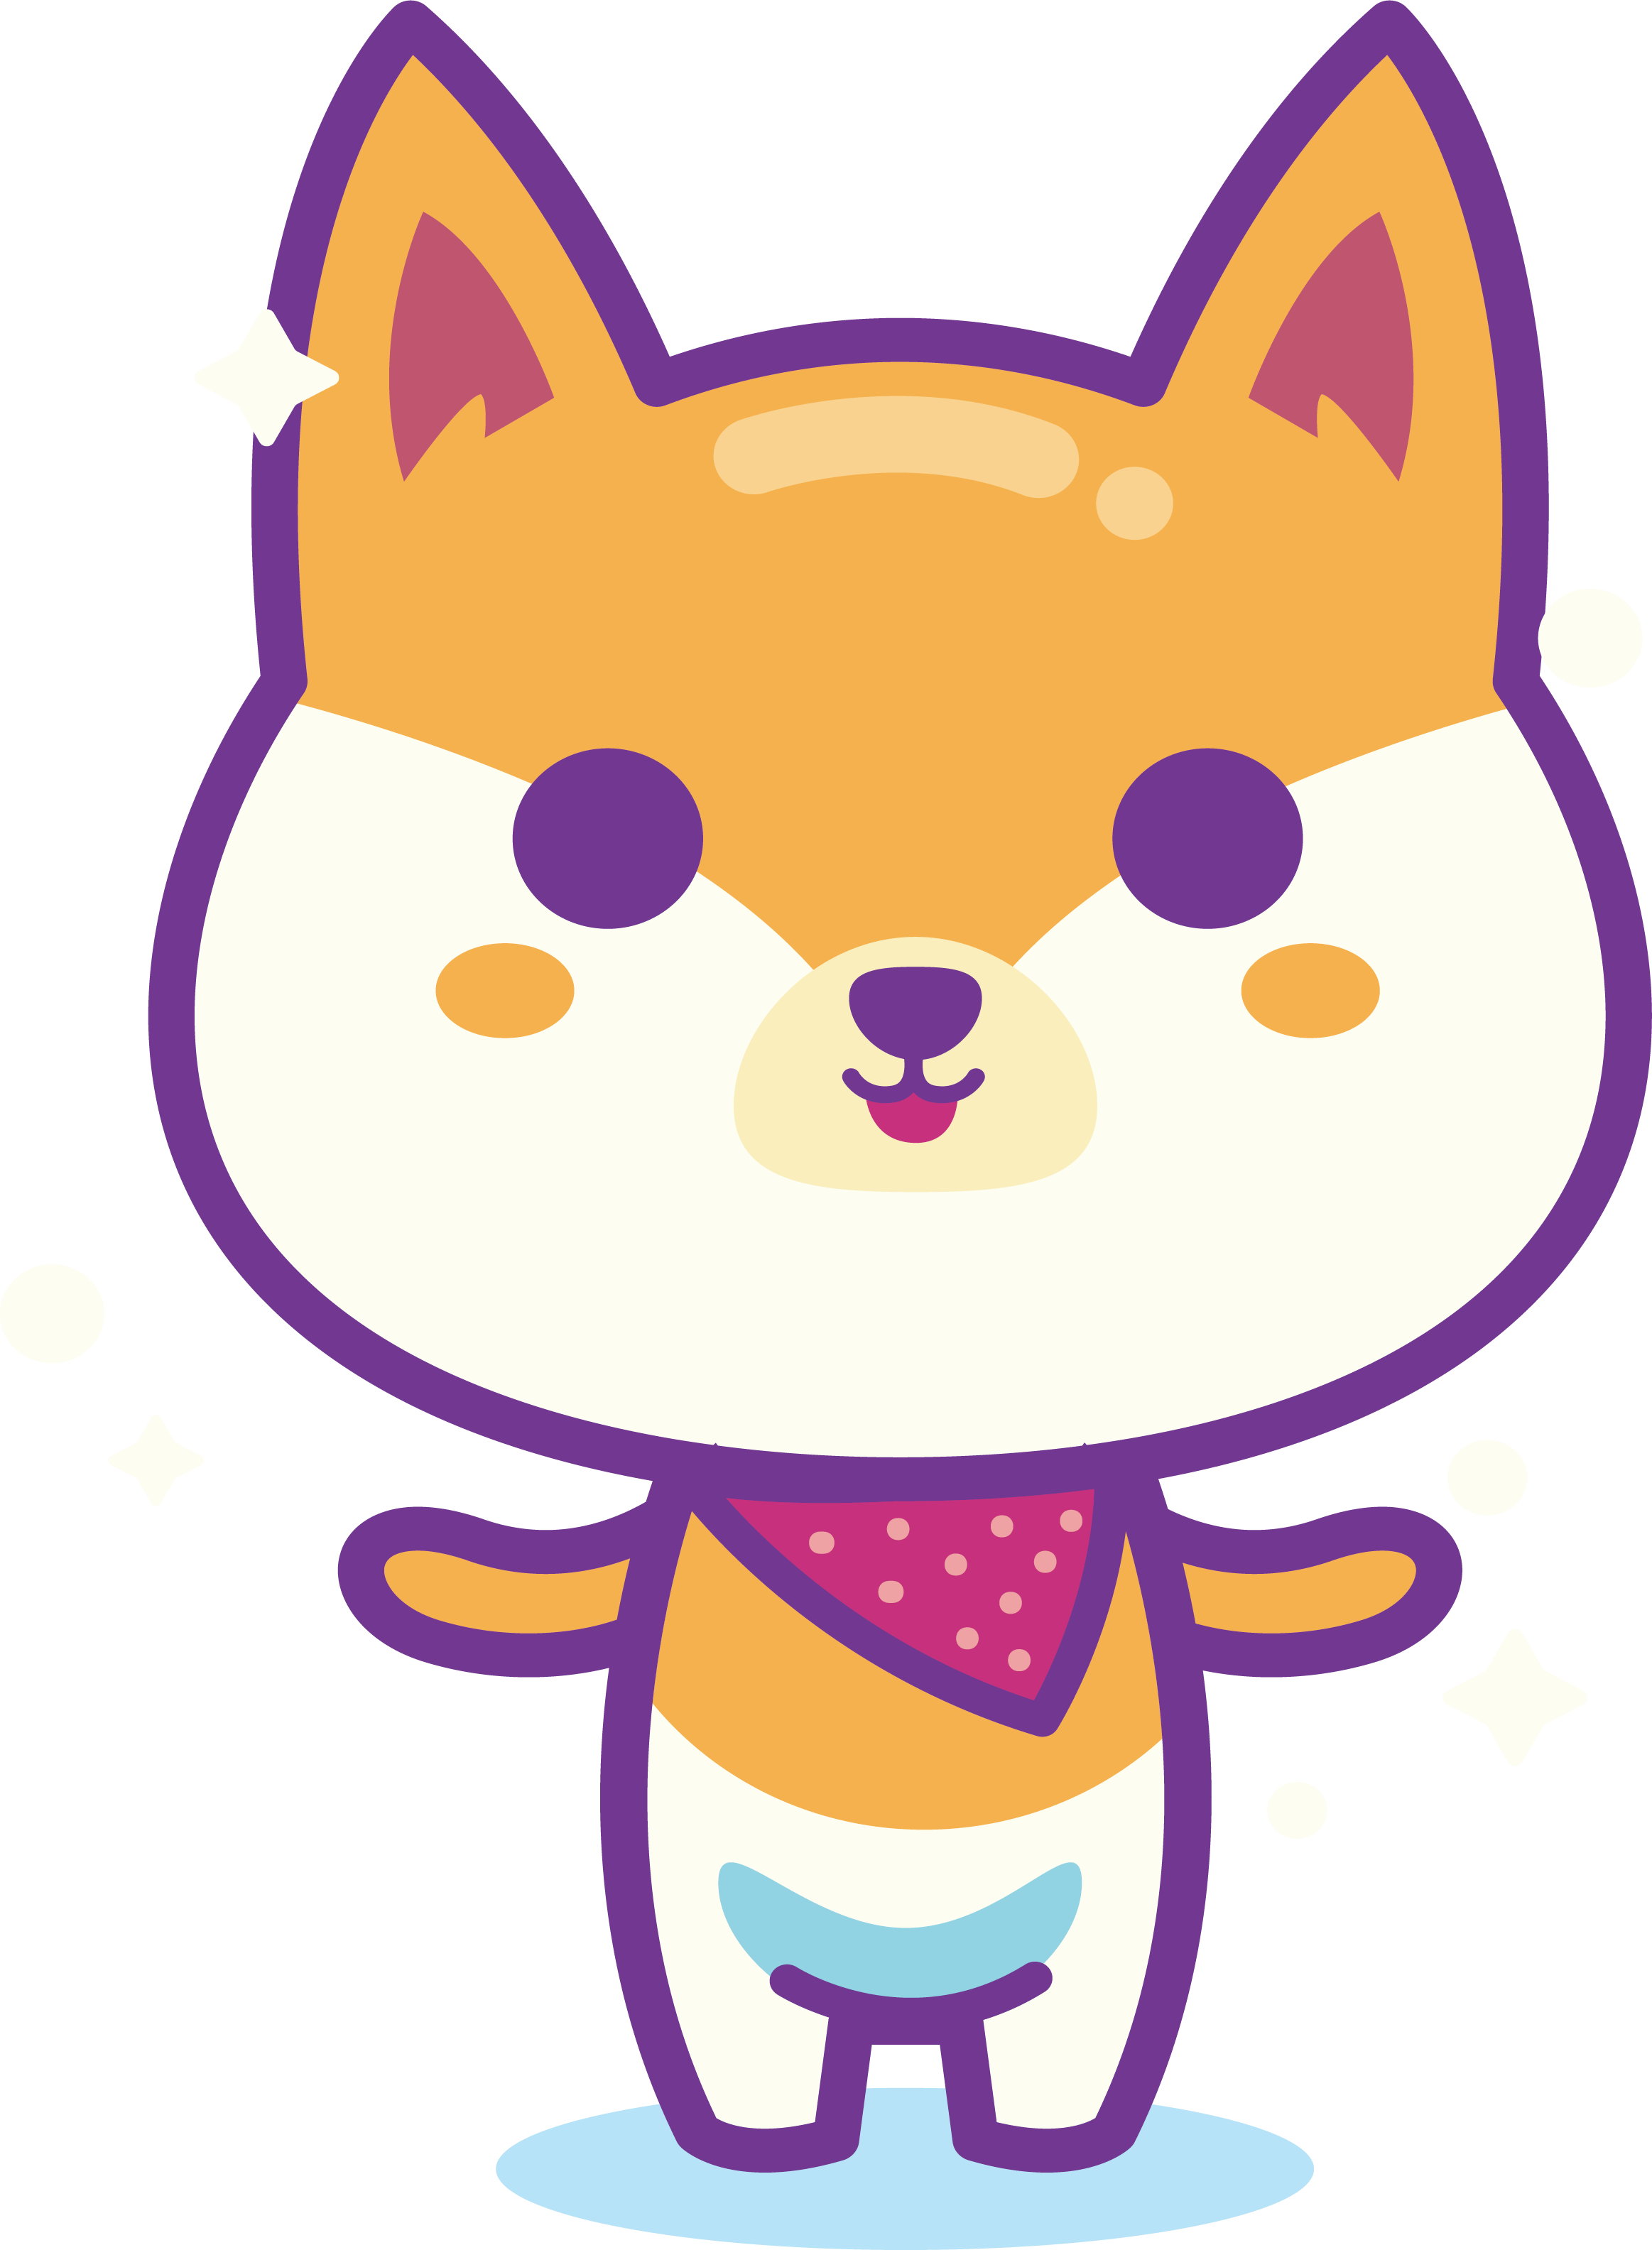 Dog and cat border clipart picture free library Shiba Inu Puppy Whiskers Cartoon Clip art - Cute dog 2326*3168 ... picture free library